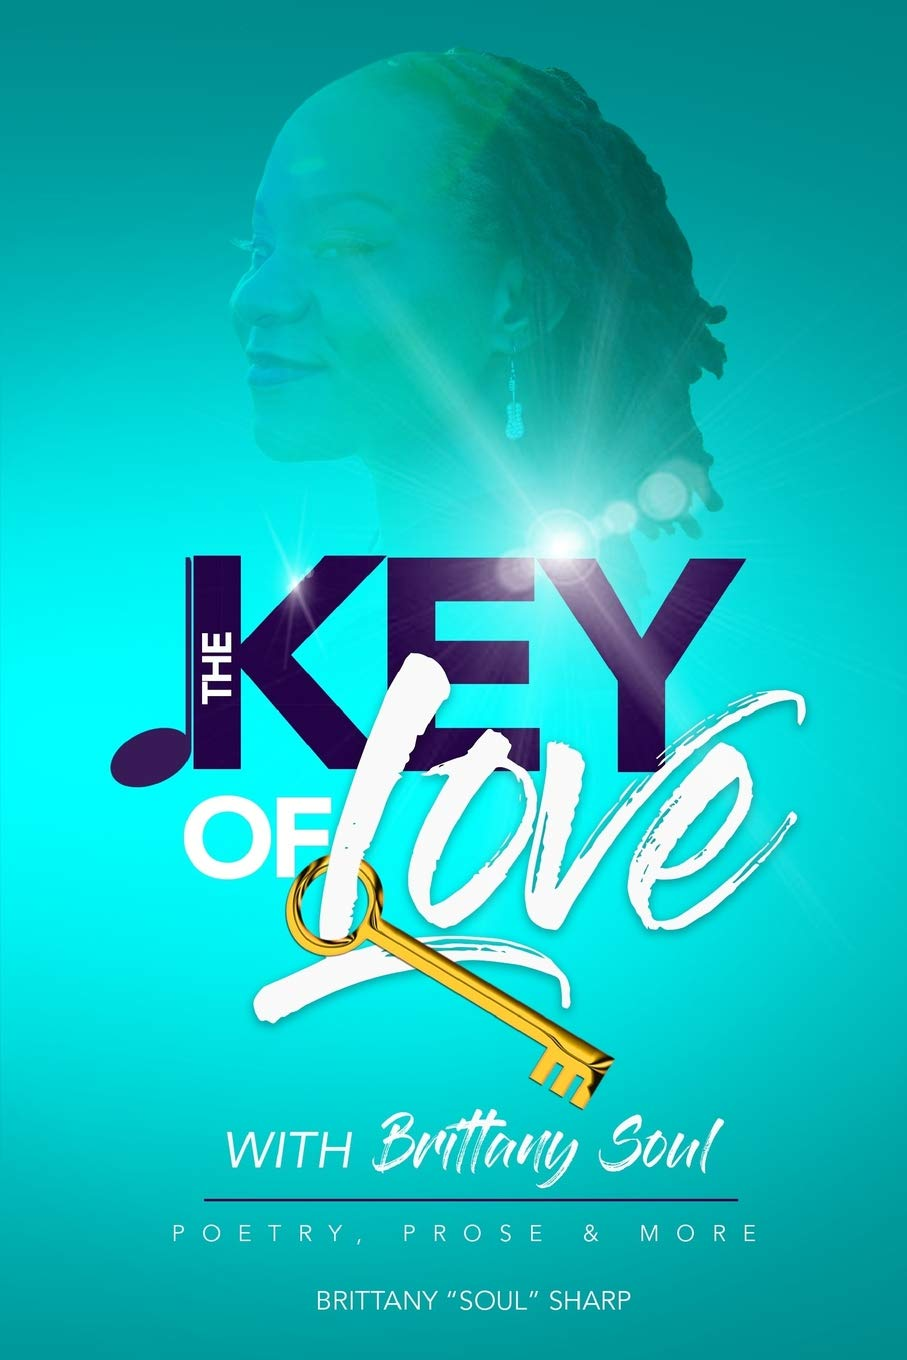 The Key of Love with Brittany Soul: Is Love by any other name, still